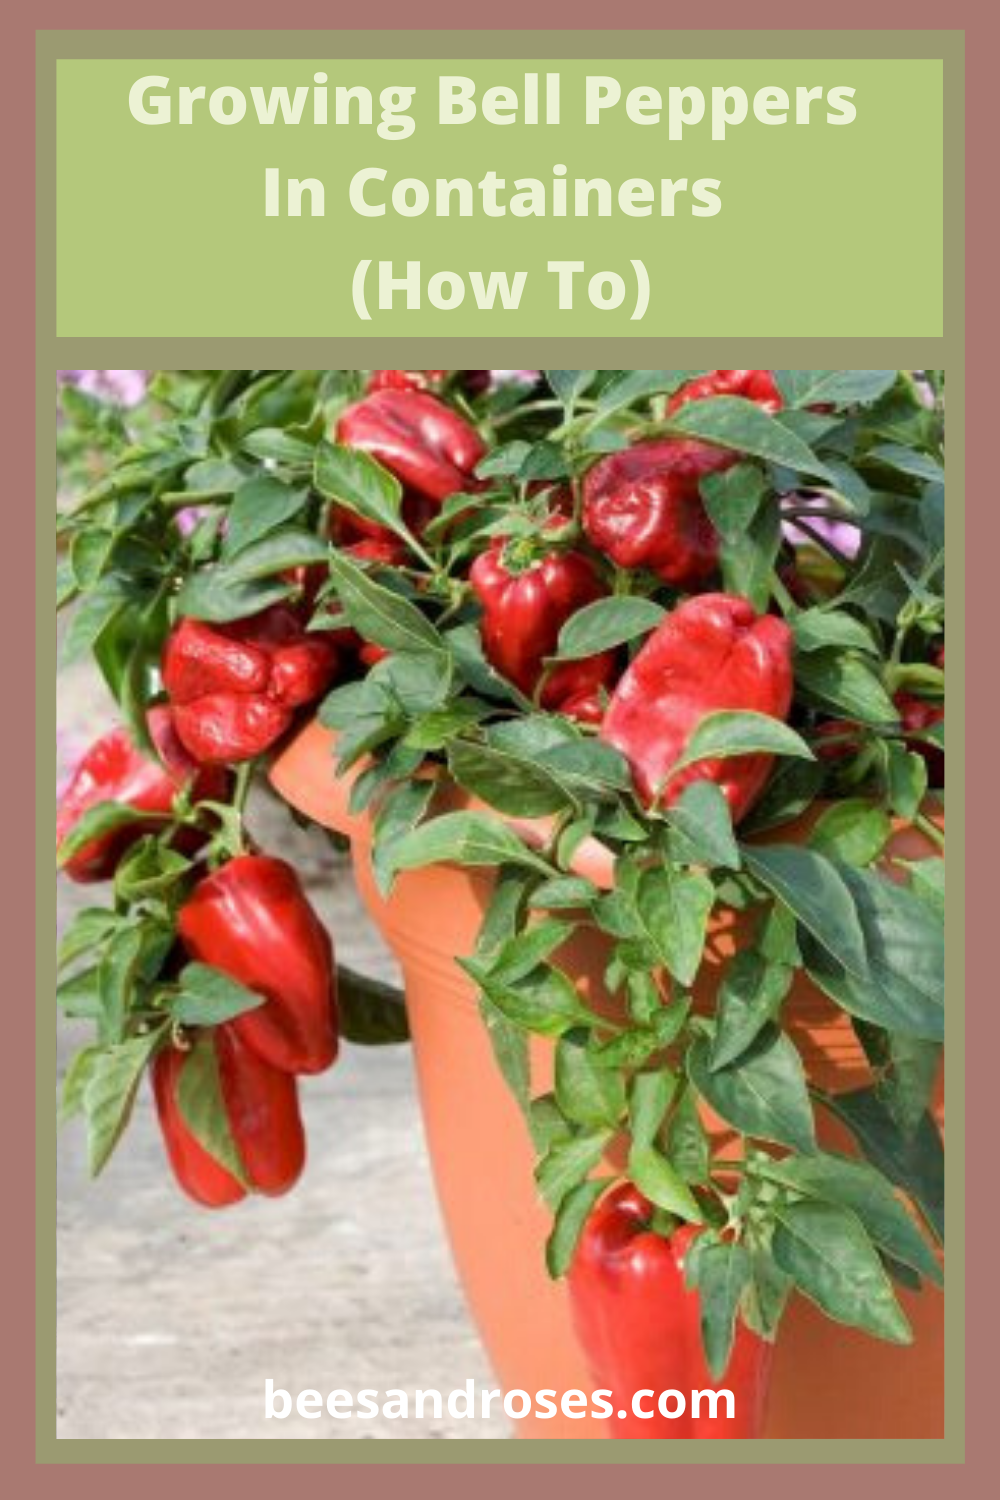 Learn how you can grow those yummy bell peppers in containers. Forget needing a big garden space. These are simple to grow and take up very little space. Pick a container, read the post and get growing. #beesandrosesblog #howtogrowbellpeppersincontainers #bellpeppers #containergardeningtips